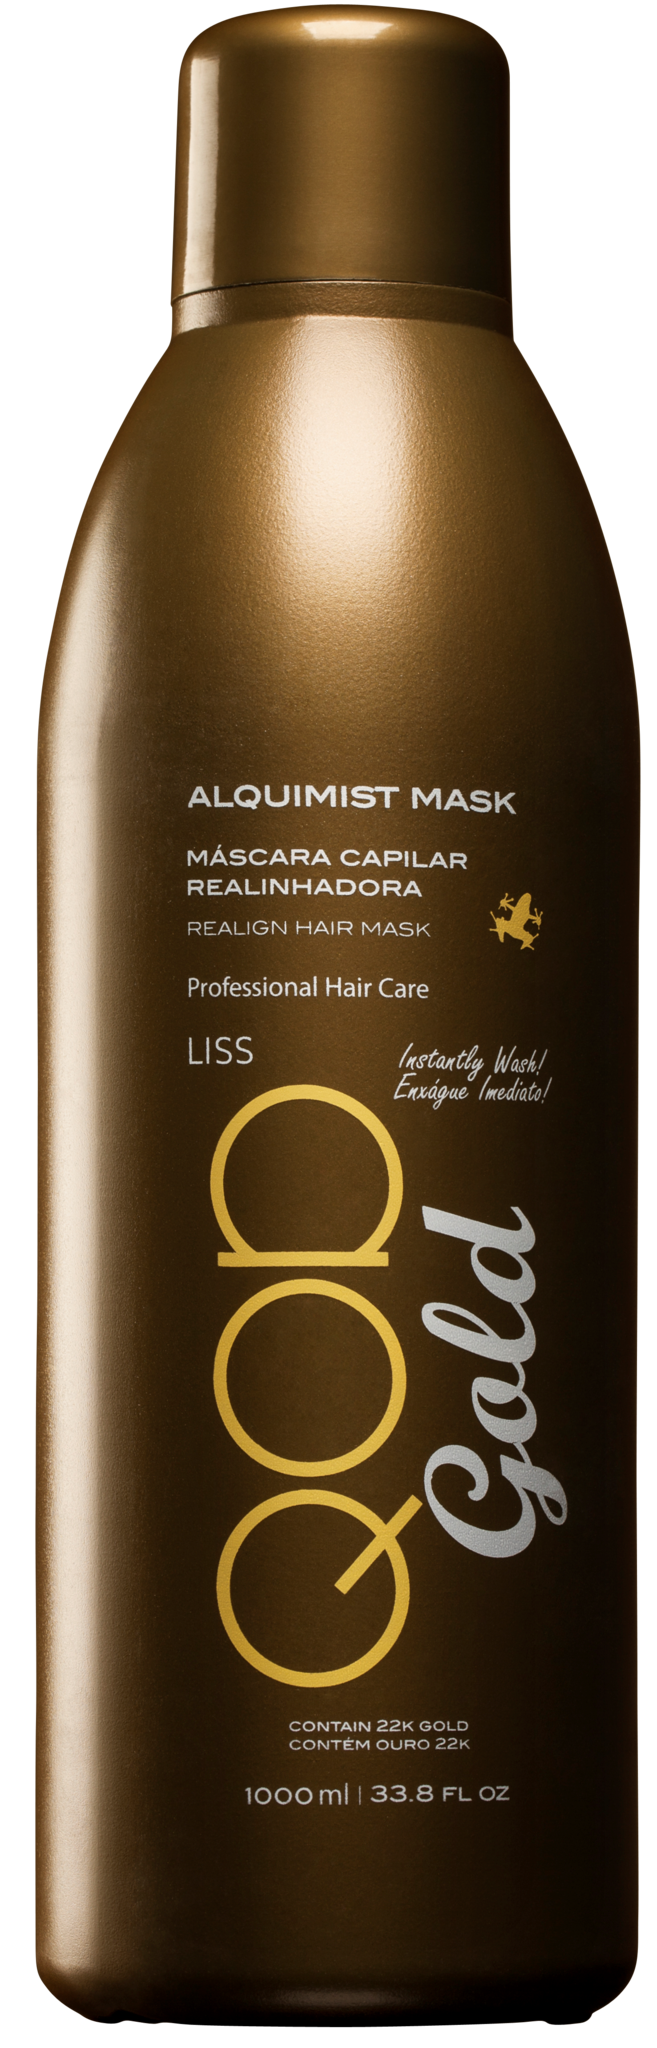 QOD GOLD ALQUIMIST 1000ml